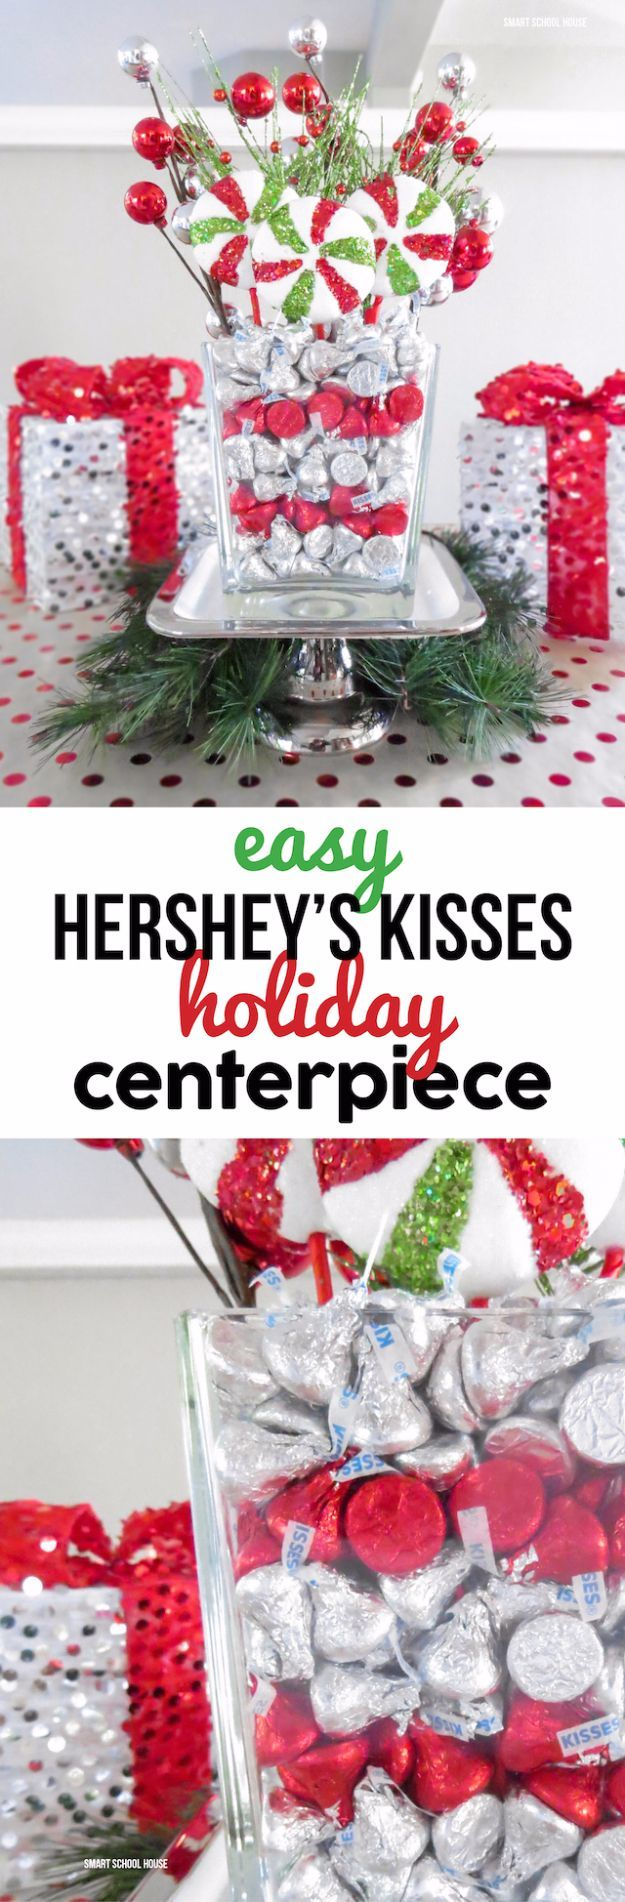 DIY Christmas Centerpieces - Easy Hershey's Kisses Holiday Centerpiece - Simple, Easy Holiday Decorating Ideas on A Budget - Cheap Home and Table Decor for The Holidays - Dollar Store Crafts, Rustic Candles, Pine Cones, Floral Ideas and Mason Jar Craft Projects http://diyjoy.com/diy-christmas-centerpieces